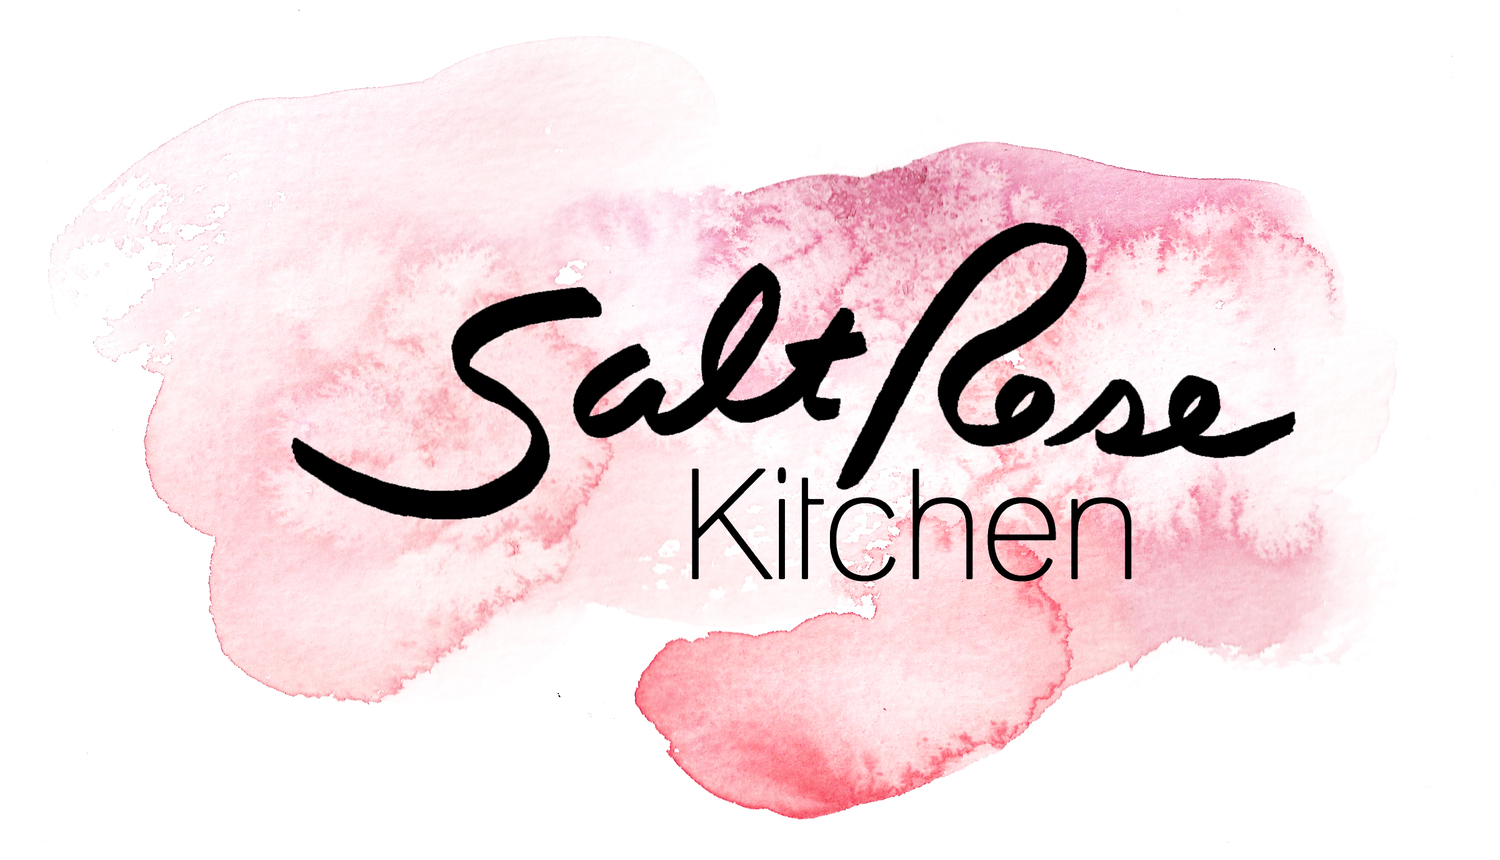 SALT ROSE KITCHEN